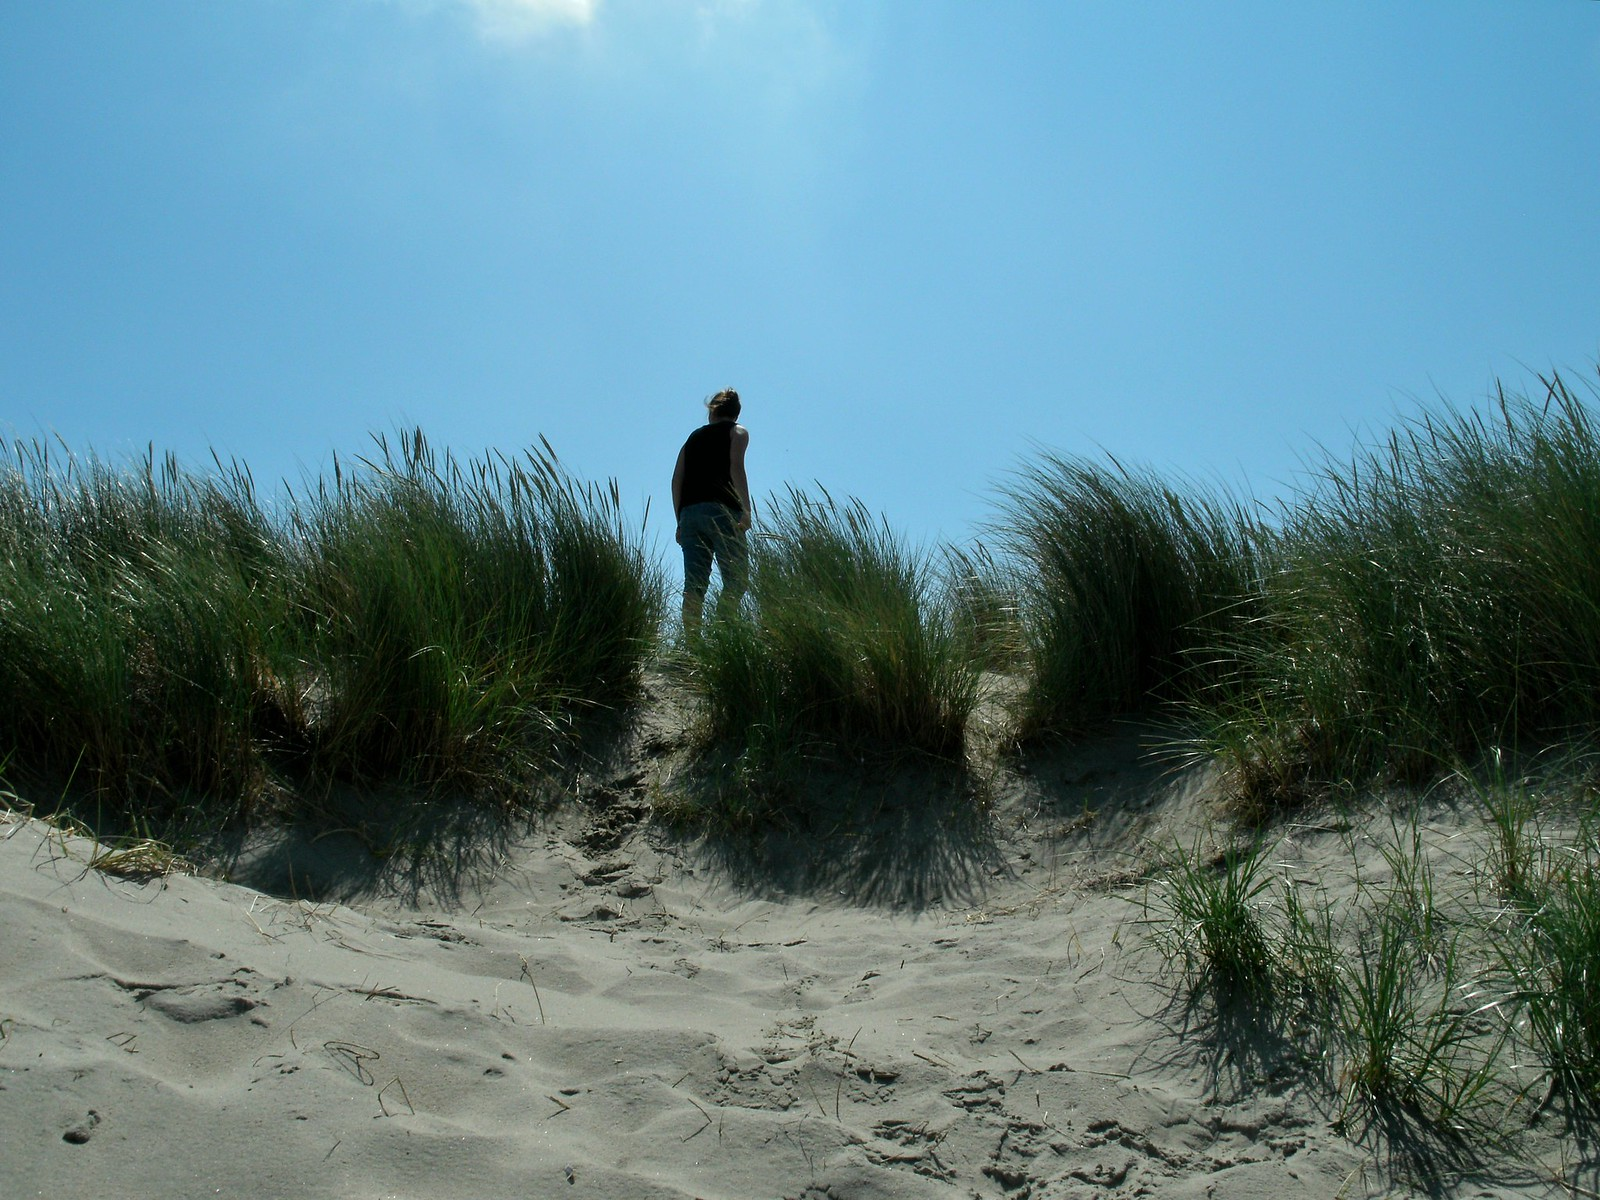 A silhouette of a girl in-between the beach vegetation.